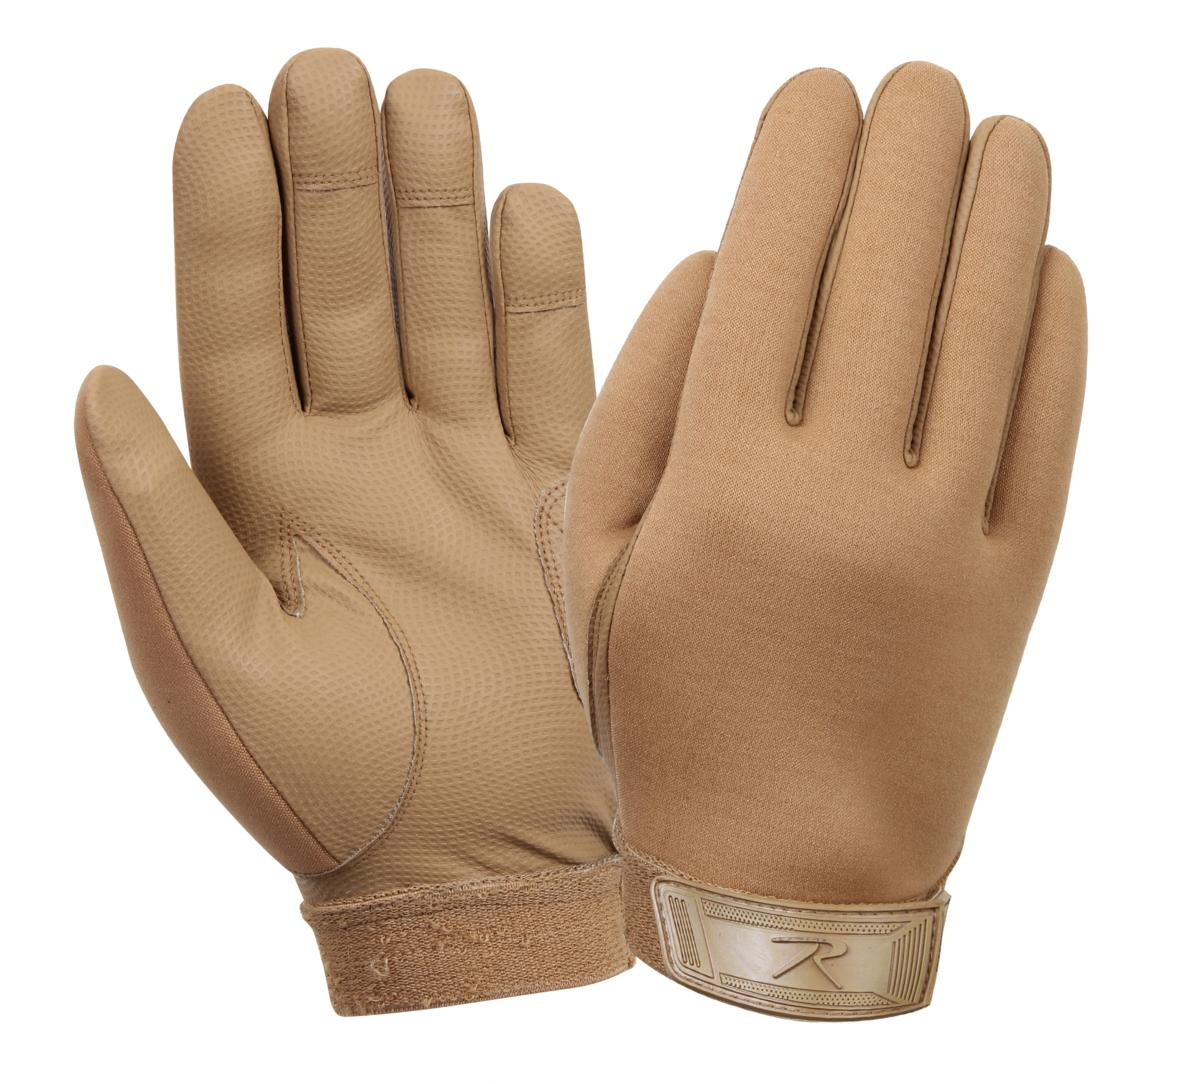 Rothco Coyote Brown Multipurpose Neoprene Gloves by Rothco